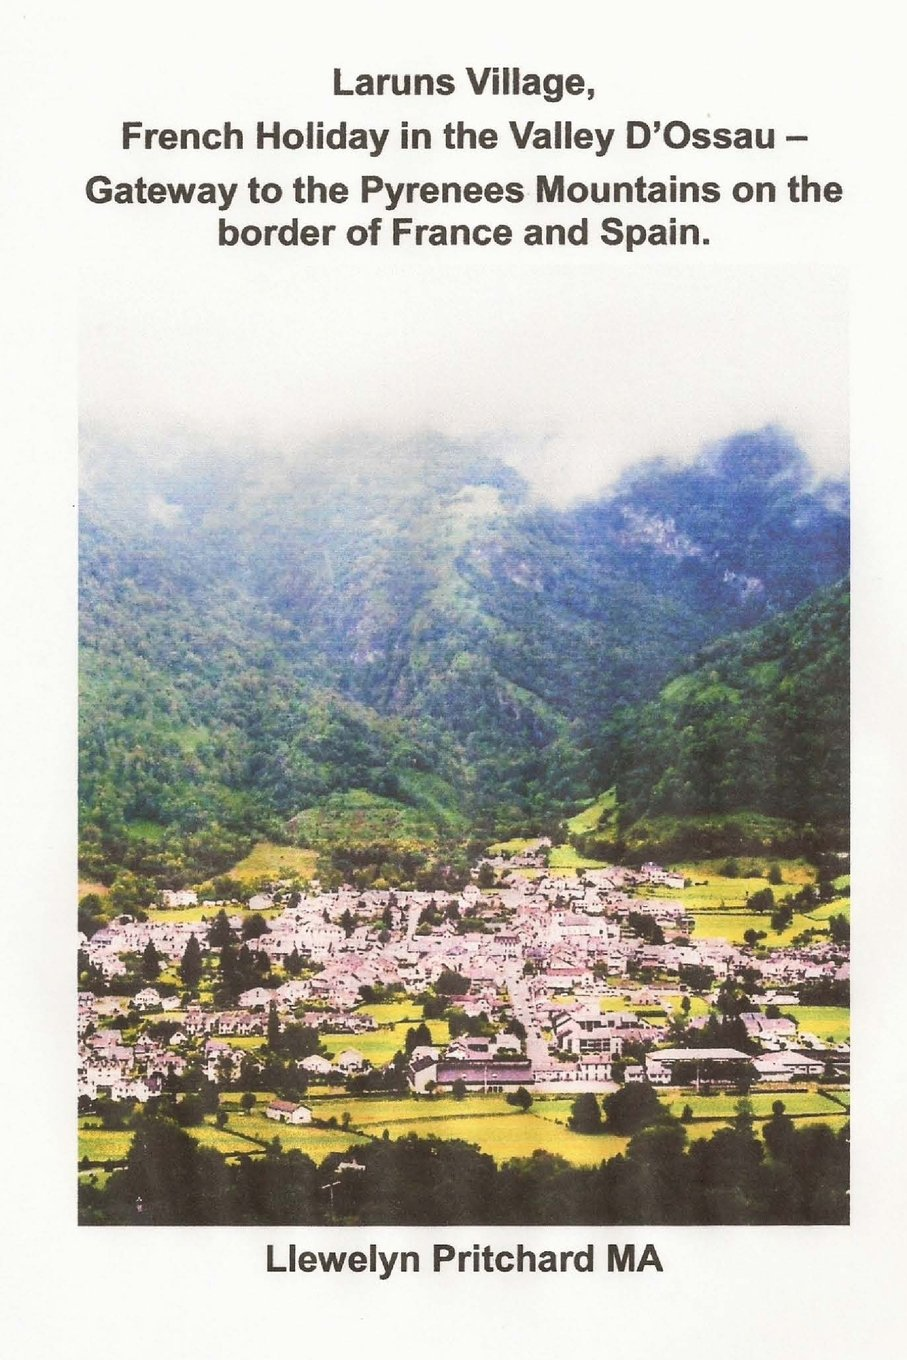 Download Laruns Village, French Holiday in the Valley D'Ossau - Gateway to the Pyrenees Mountains on the Border of France and Spain (The Illustrated Diaries of ... Pritchard MA) (Volume 8) (Bengali Edition) PDF